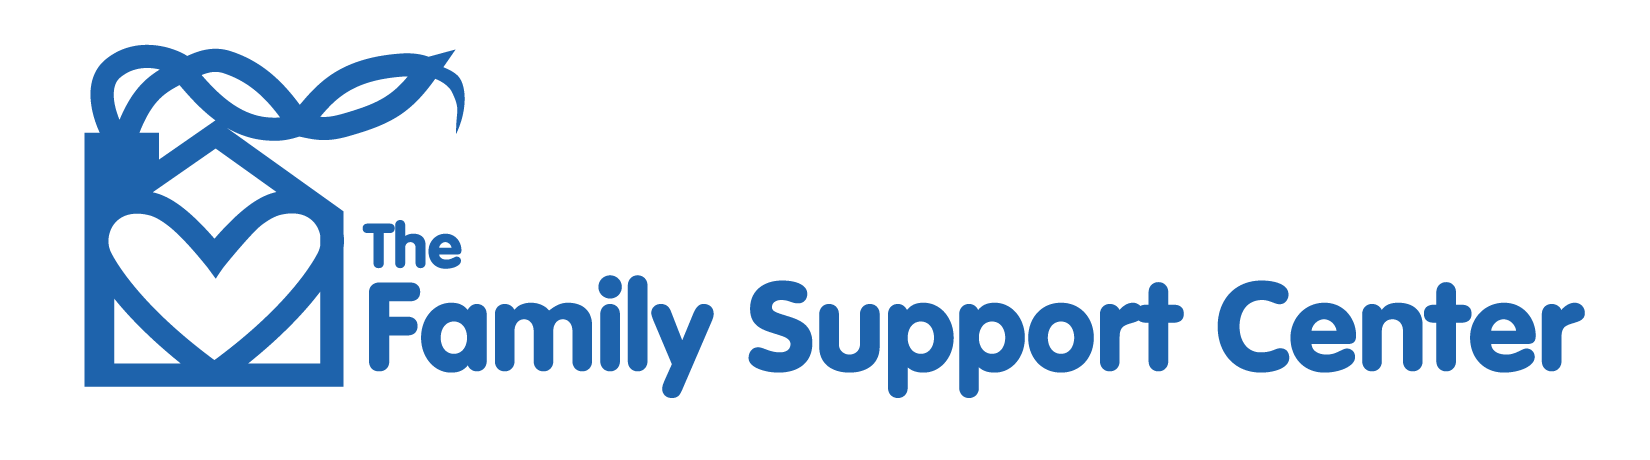 The Family Support Center